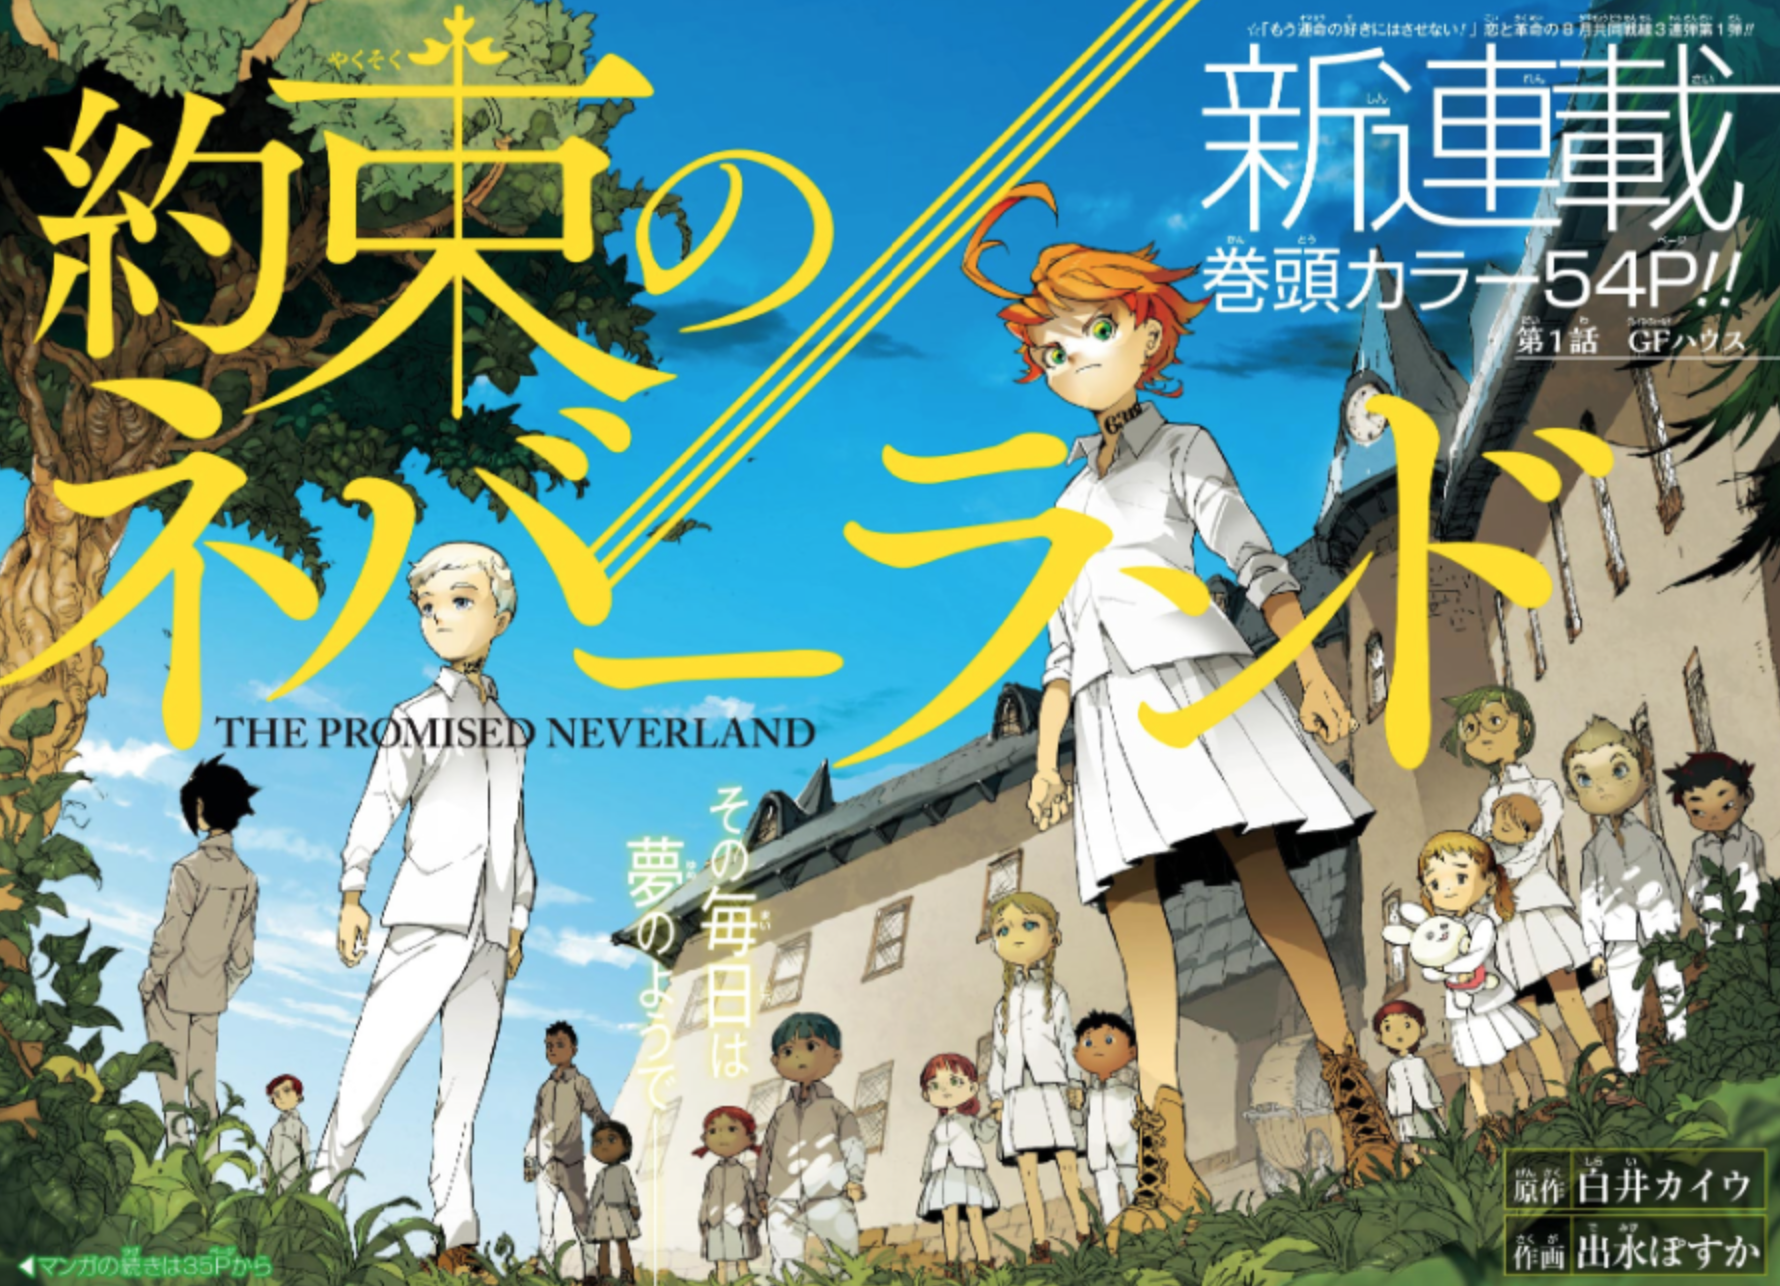 The Promised Neverland image The Promised Neverland HD wallpapers